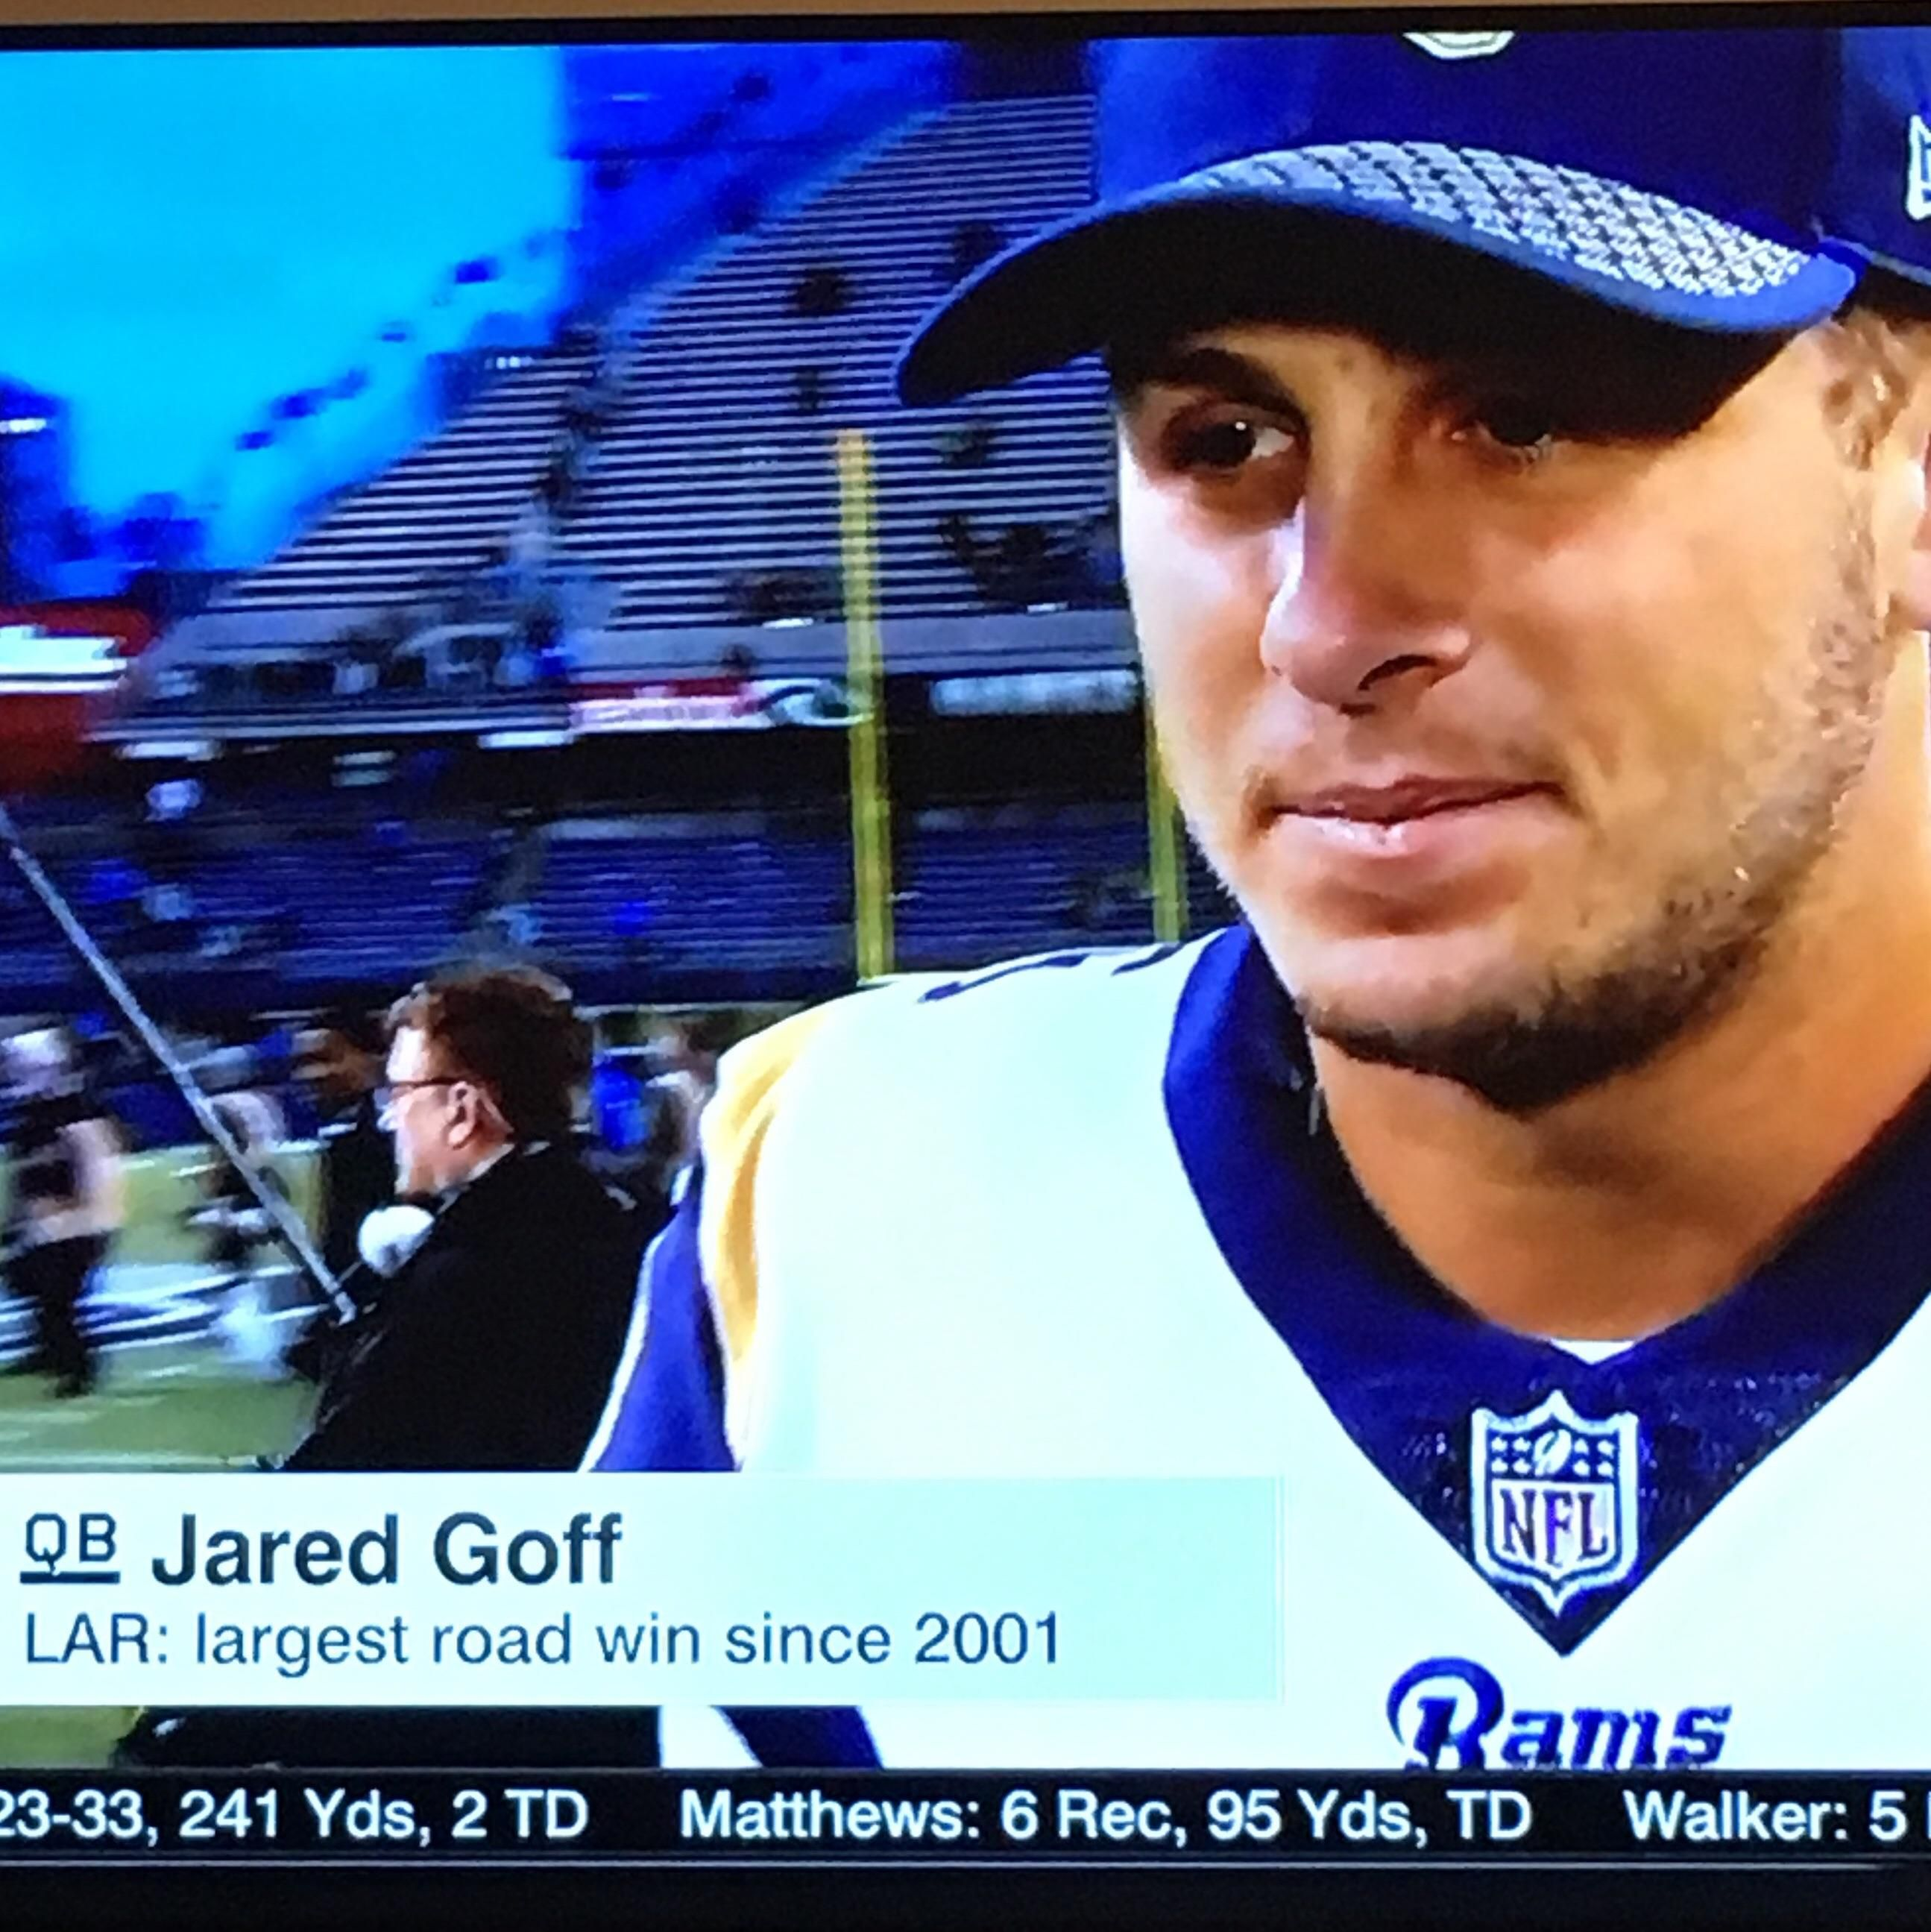 Jared Goff Ryan Gosling